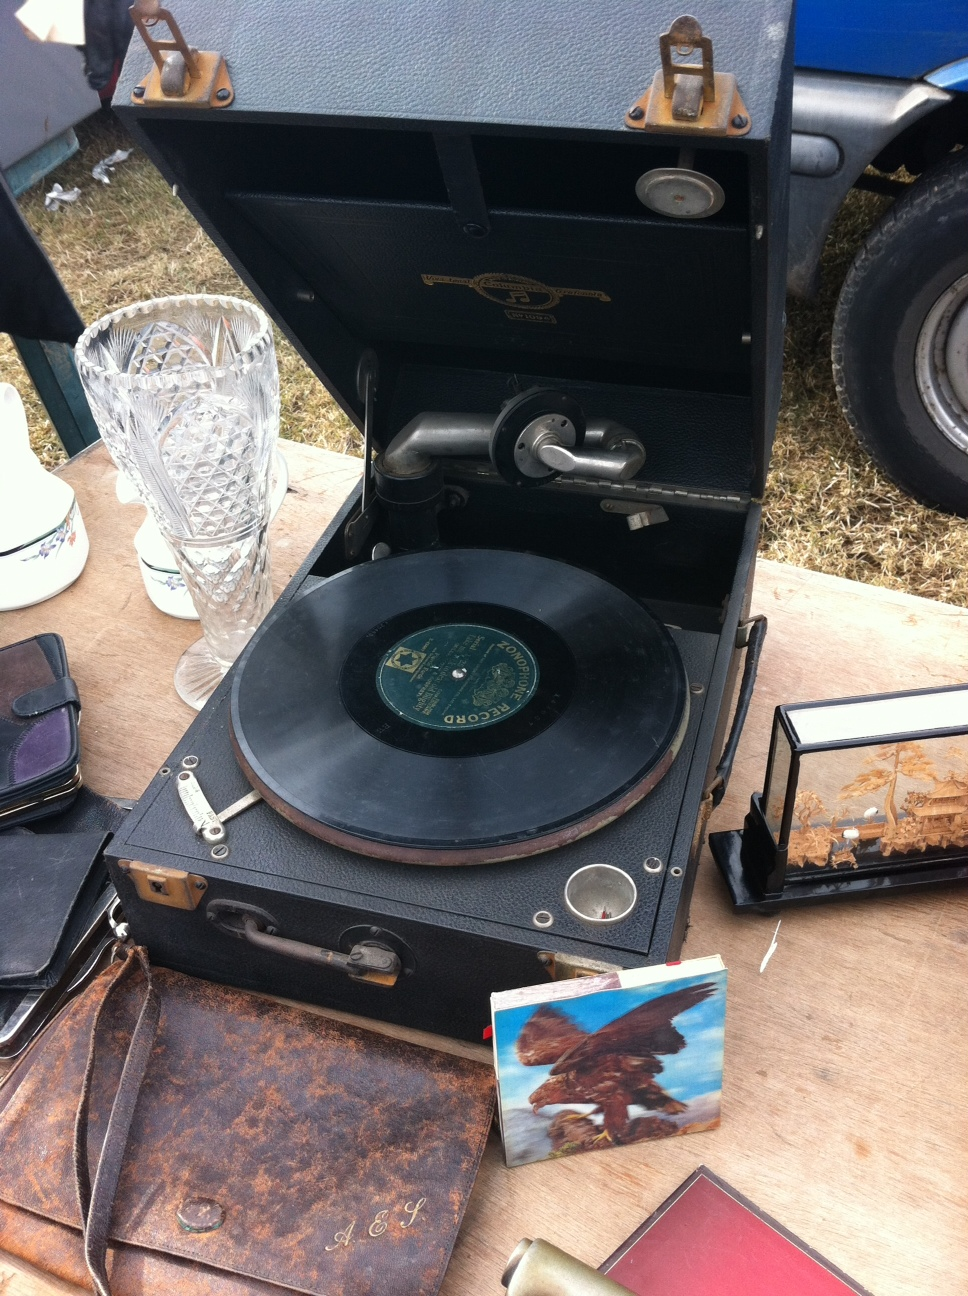 I'll also be posting a series of photographs of 'Things I didn't buy at the car boot sale'